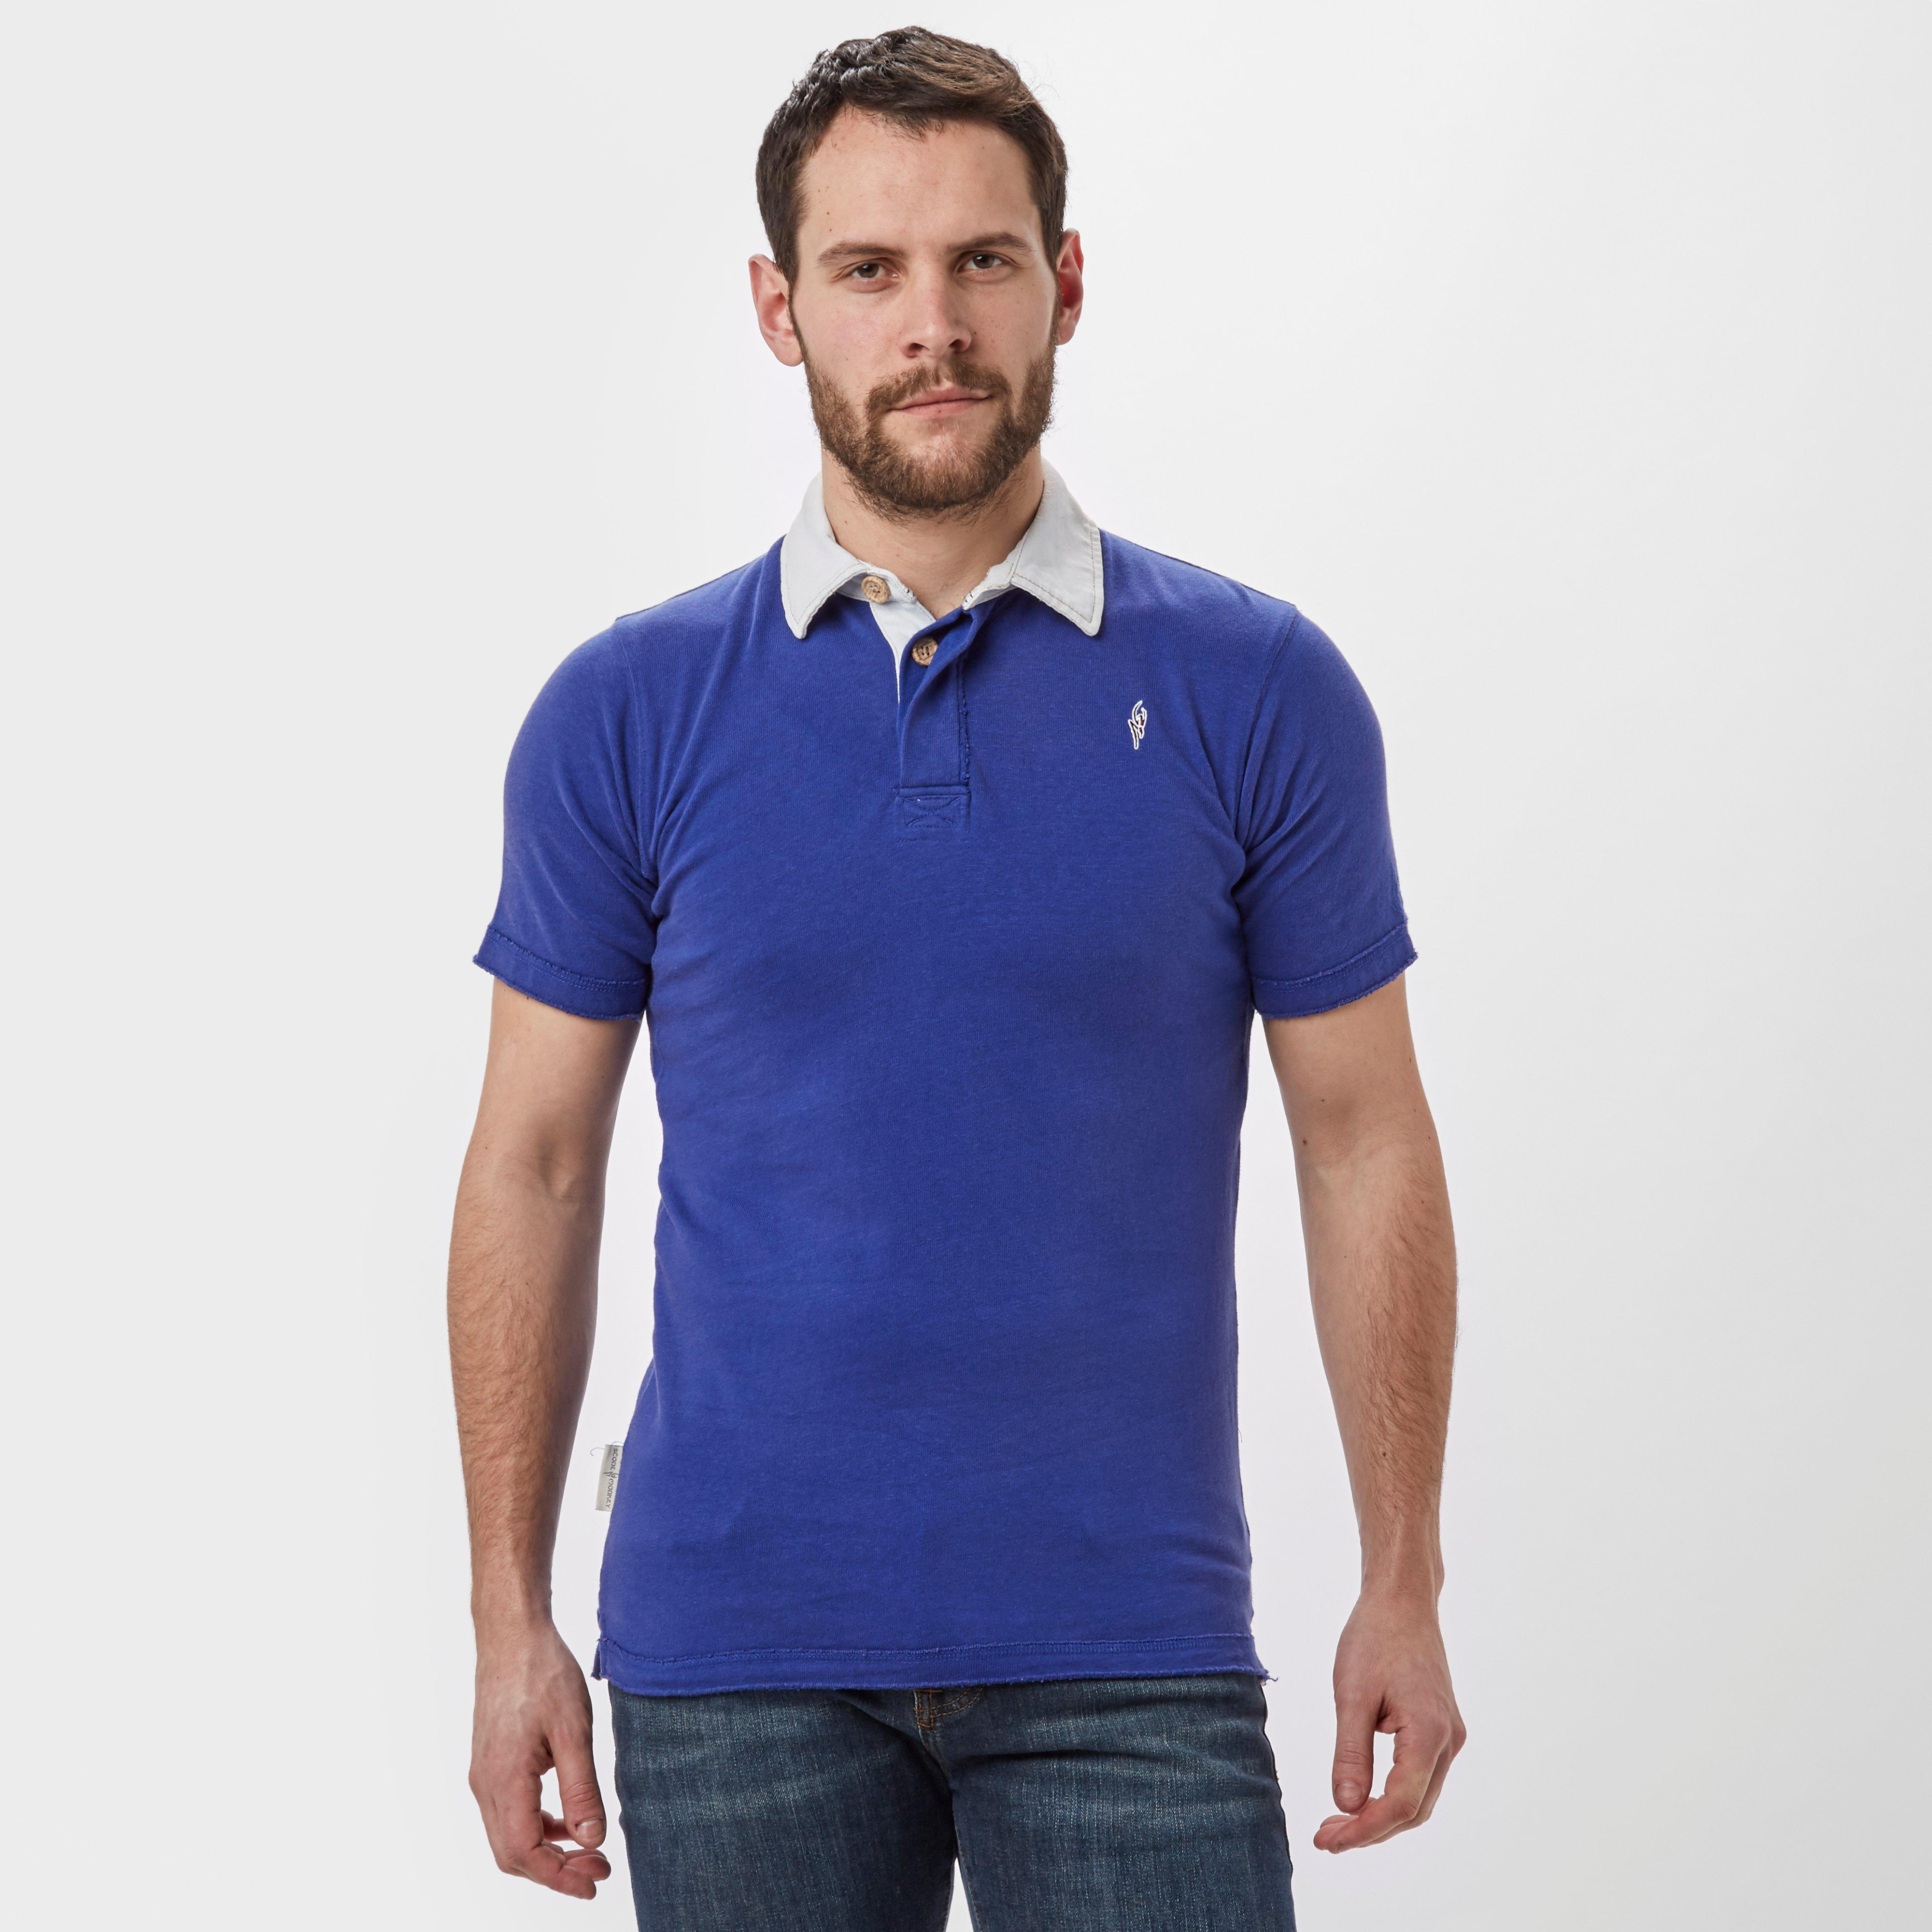 Stone Monkey Men's Hywell Rugby T-Shirt, Blue